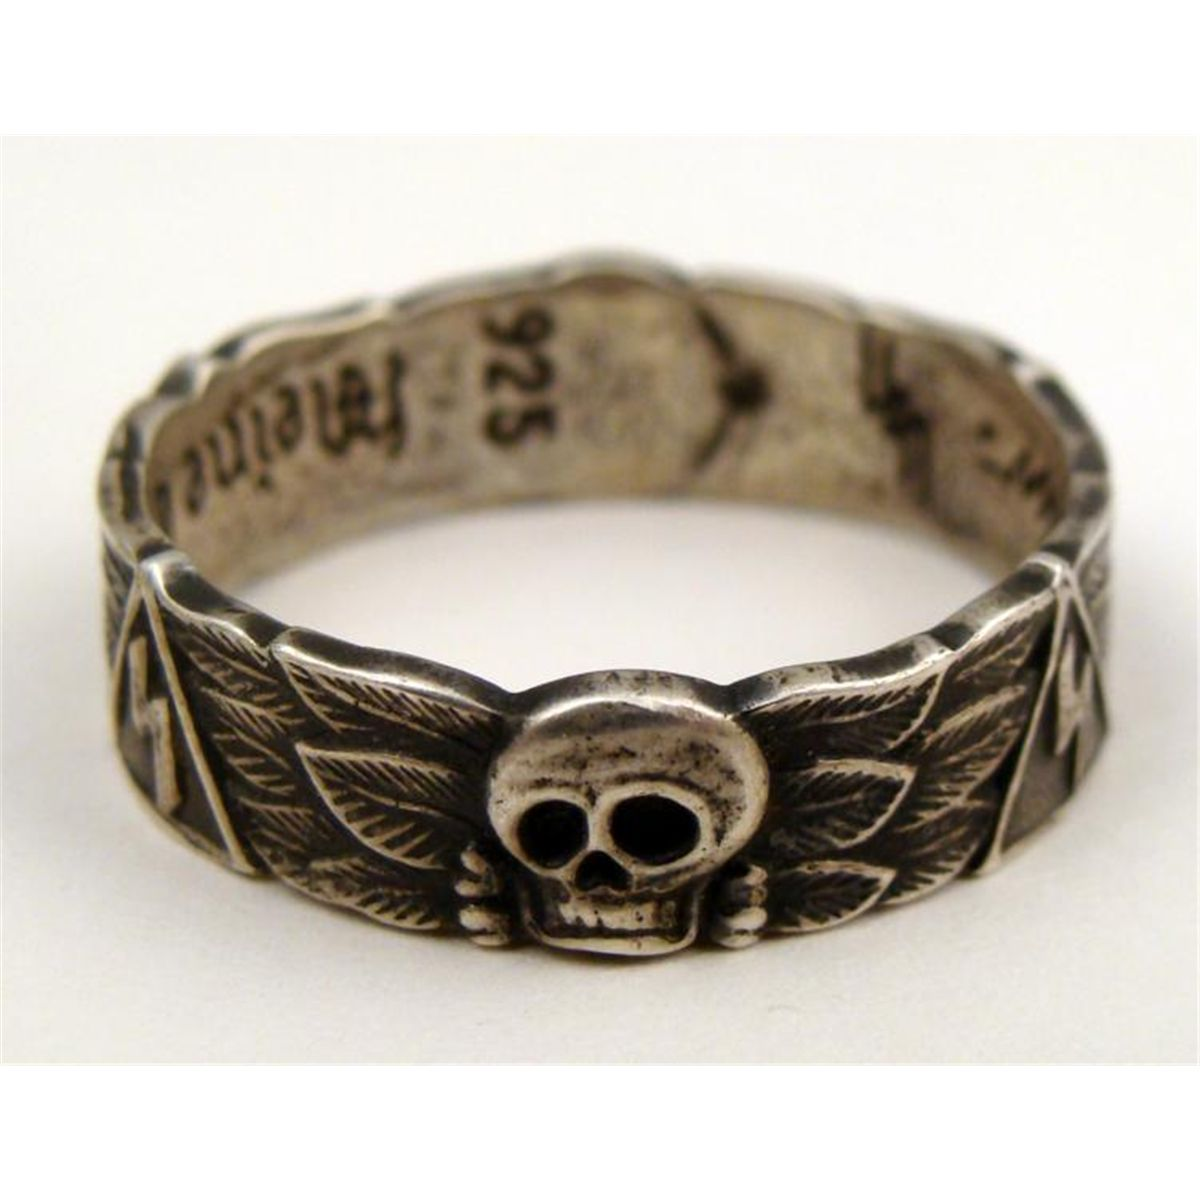 REPRODUCTION SS WEDDING RING WITH SKULL SWATISKA RUNES i skull wedding ring